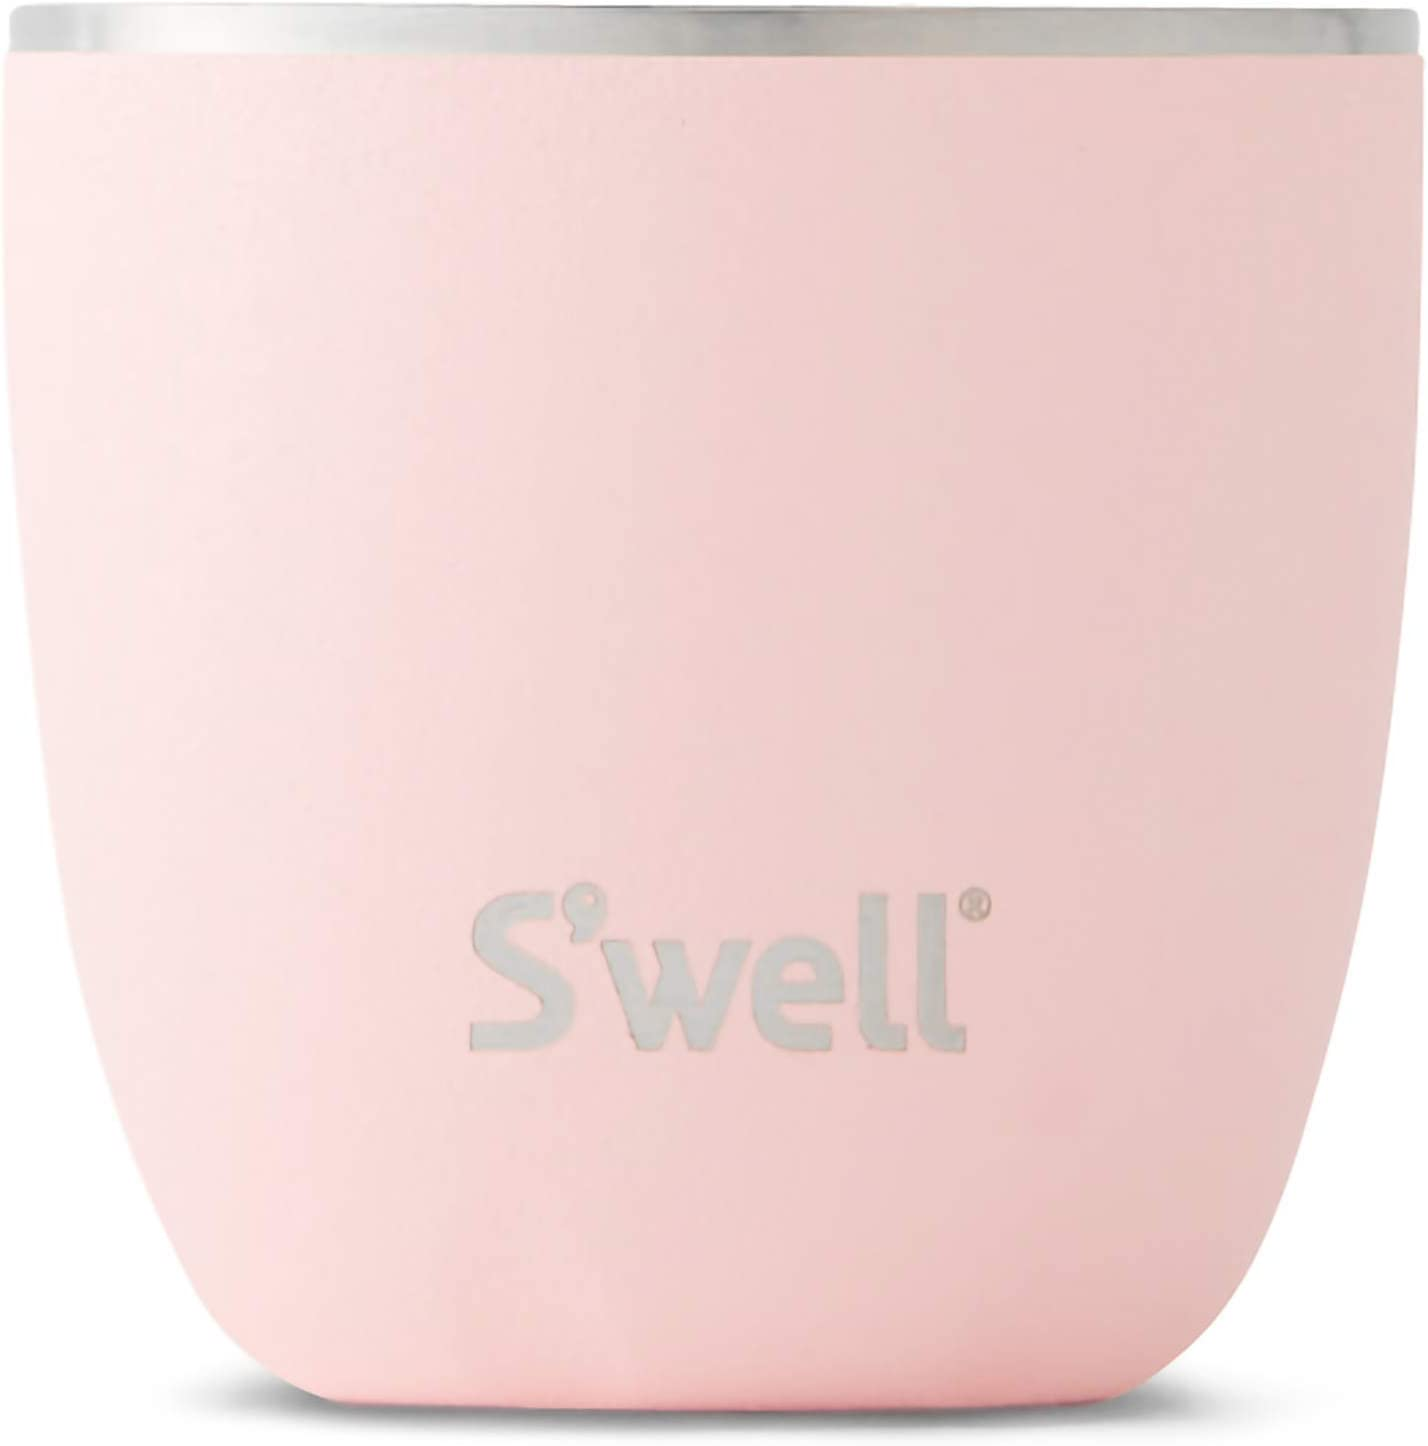 S'well Stainless Steel Tumbler-10 Fl Oz-Pink Topaz-Triple-Layered Vacuum-Insulated Containers Keeps Food and Drinks Cold and Hot-with No Condensation-BPA Free, 10oz